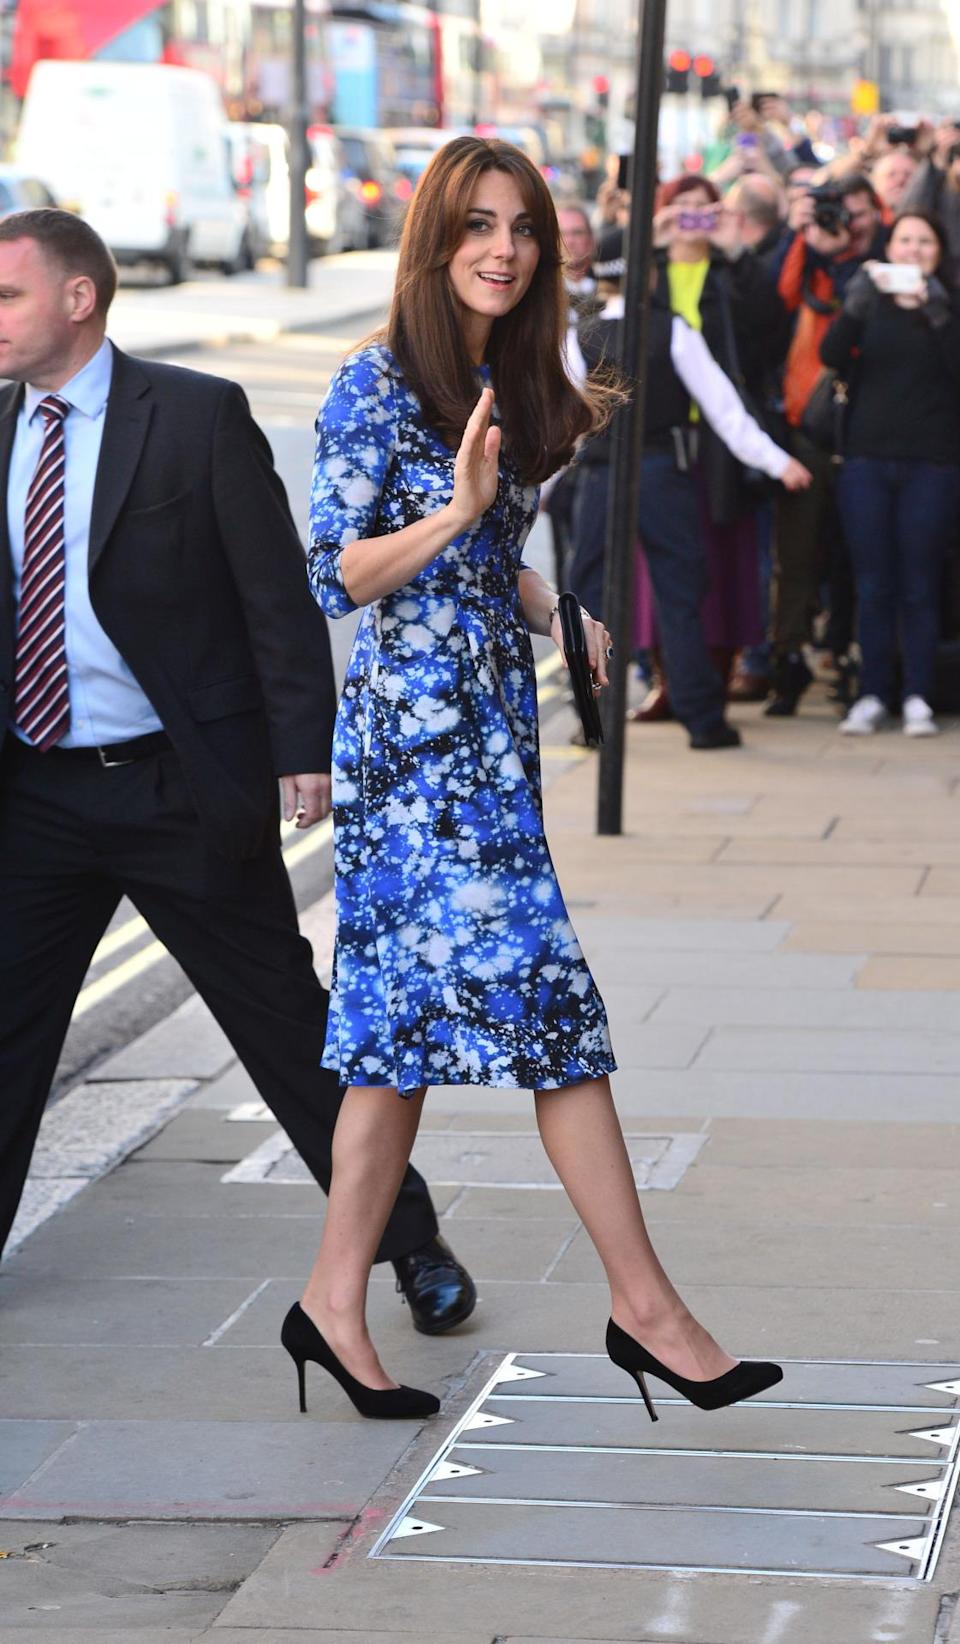 <p>Kate attended a charity event at BAFTA in a printed Tabitha Webb dress and black Jimmy Choo heels. She also carried a Mulberry Bayswater clutch in black suede.</p><p><i>[Photo: PA]</i></p>